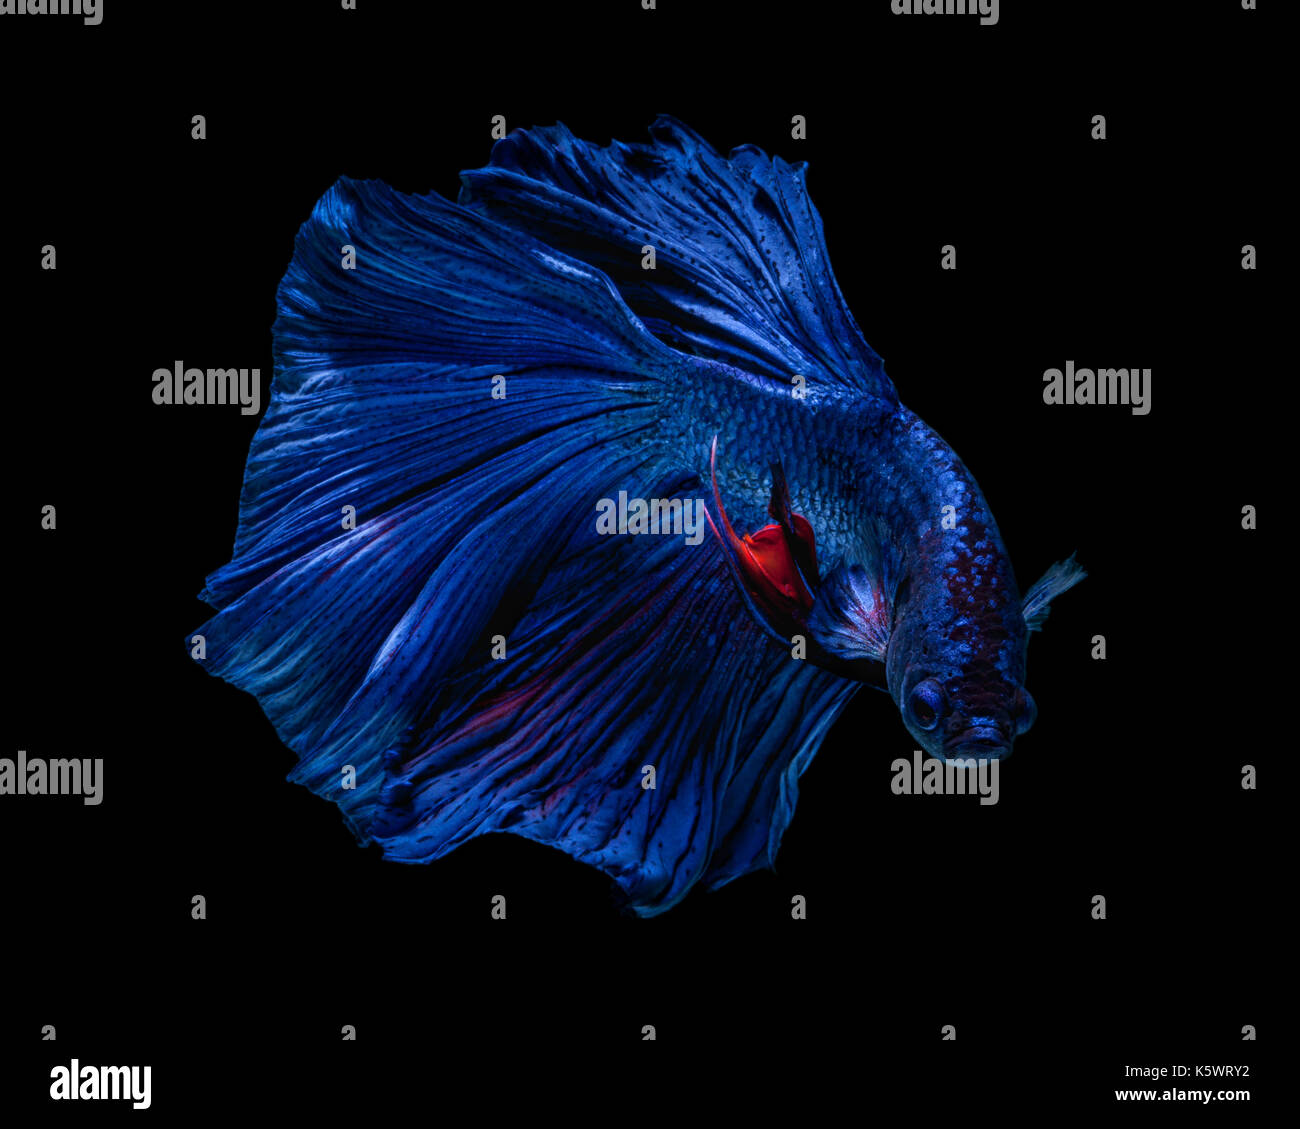 Fine art concept close up beautiful movement of 'Half moon' Betta fish isolated on black background. Fine art design concept. macro photo - Stock Image